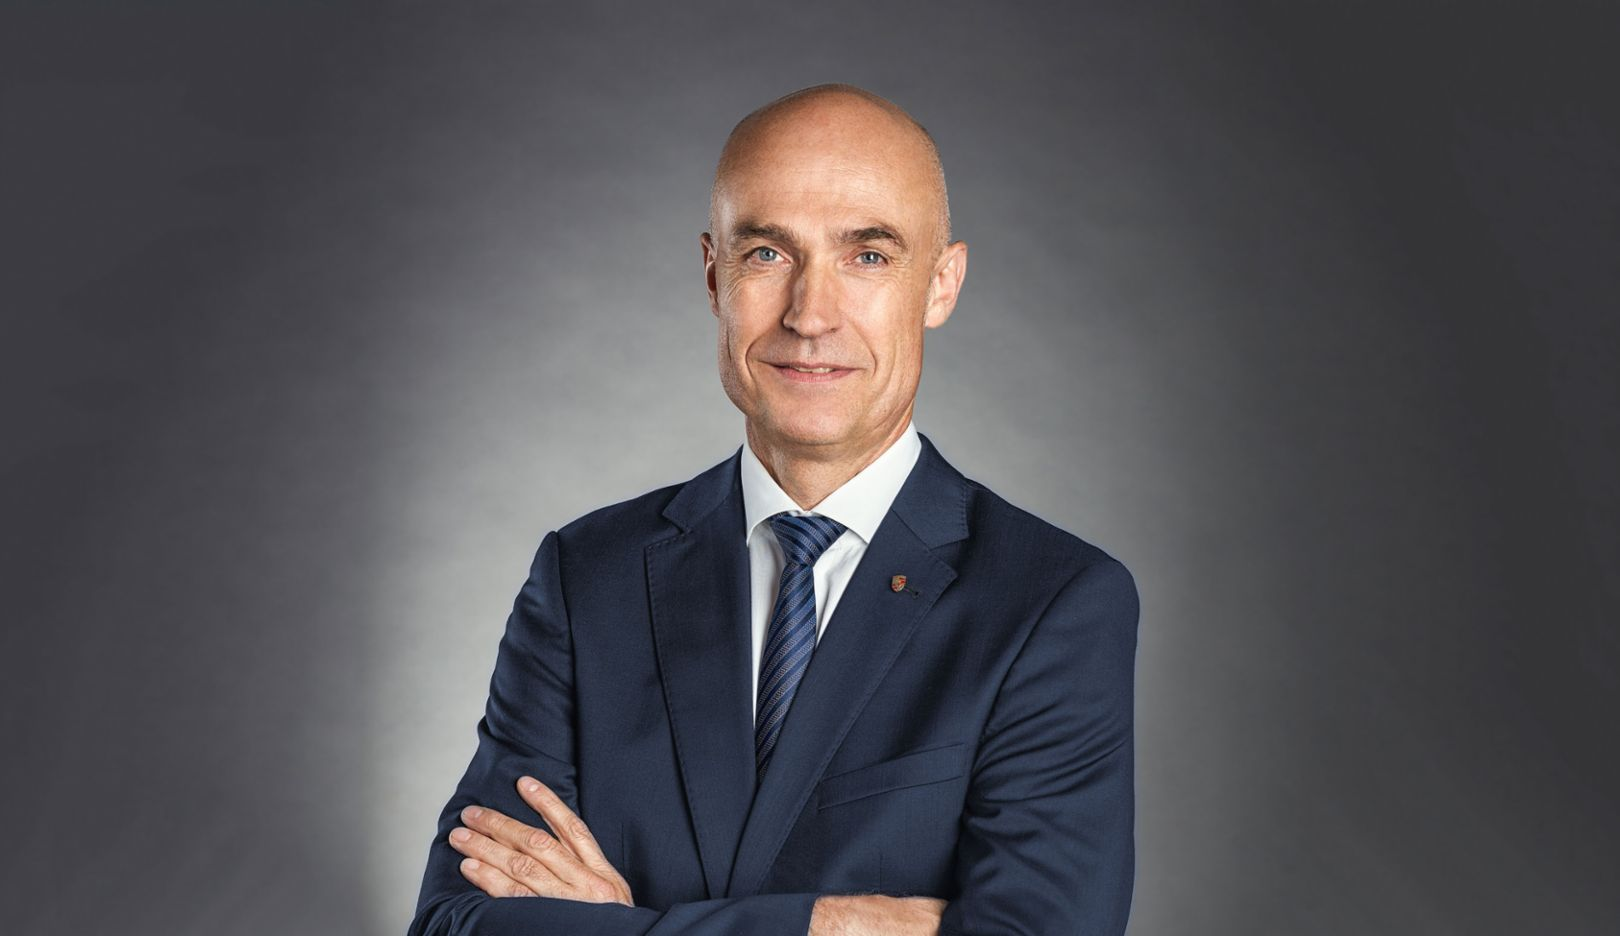 Manfred Bräunl, CEO bei Porsche Middle East and Africa FZE (ab 1. März 2019), Porsche AG